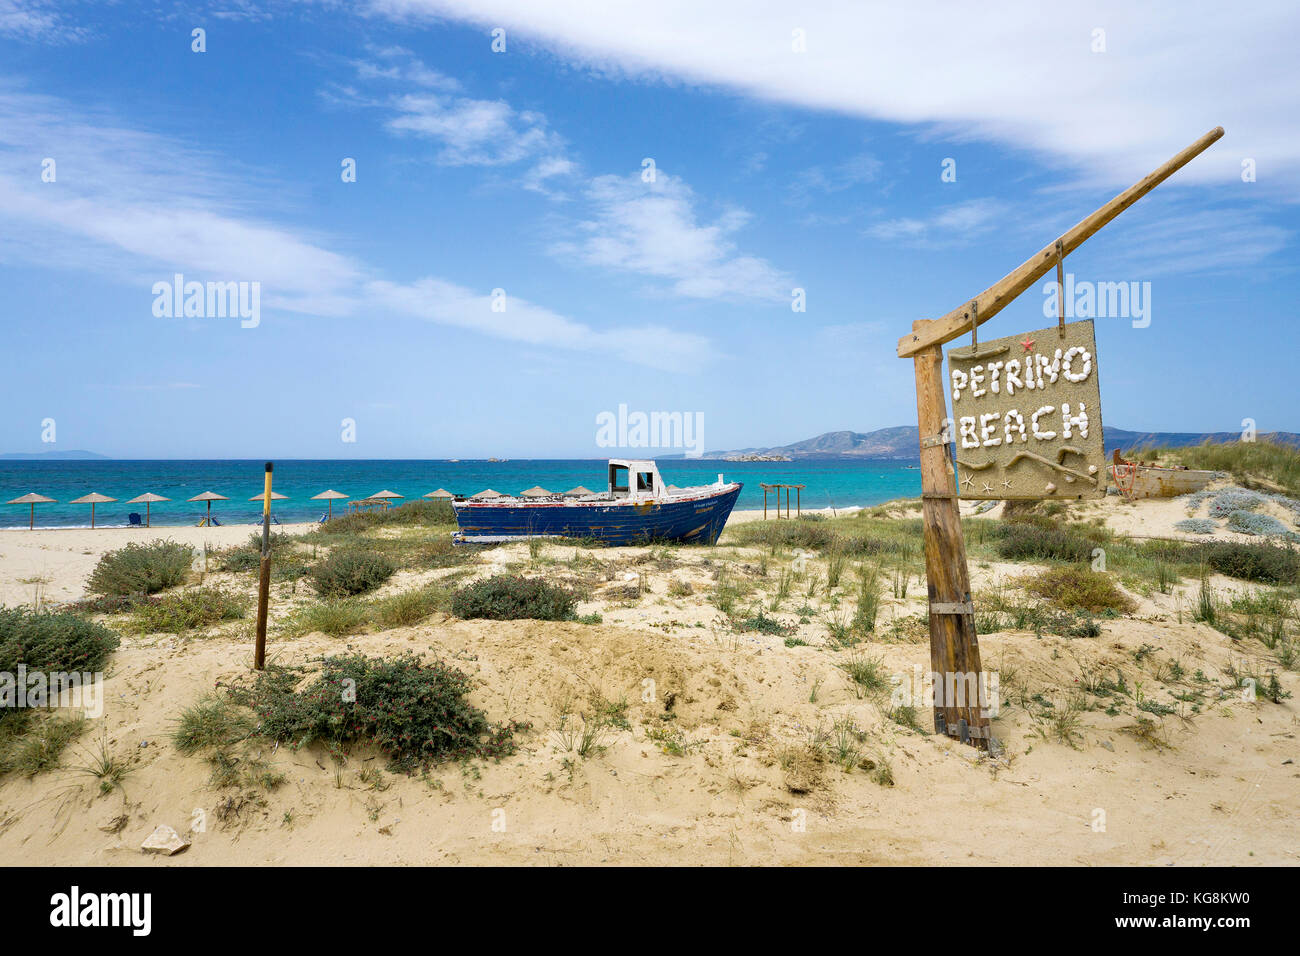 Old fishing boat at the dunes of Petrivo beach, west side of Naxos, Cyclades, Aegean, Greece - Stock Image